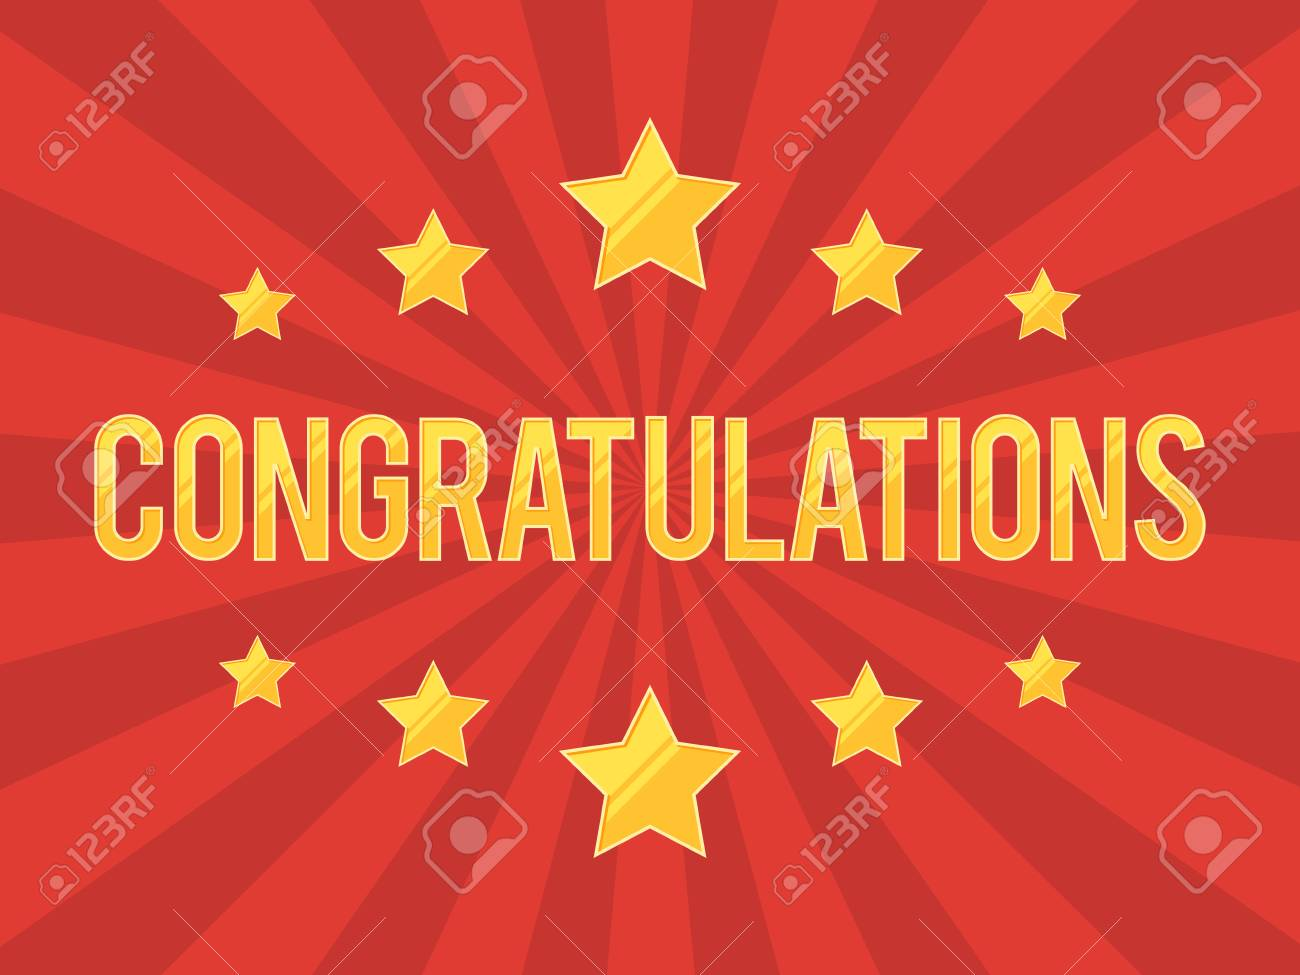 congratulations banner with gold stars on red background vector